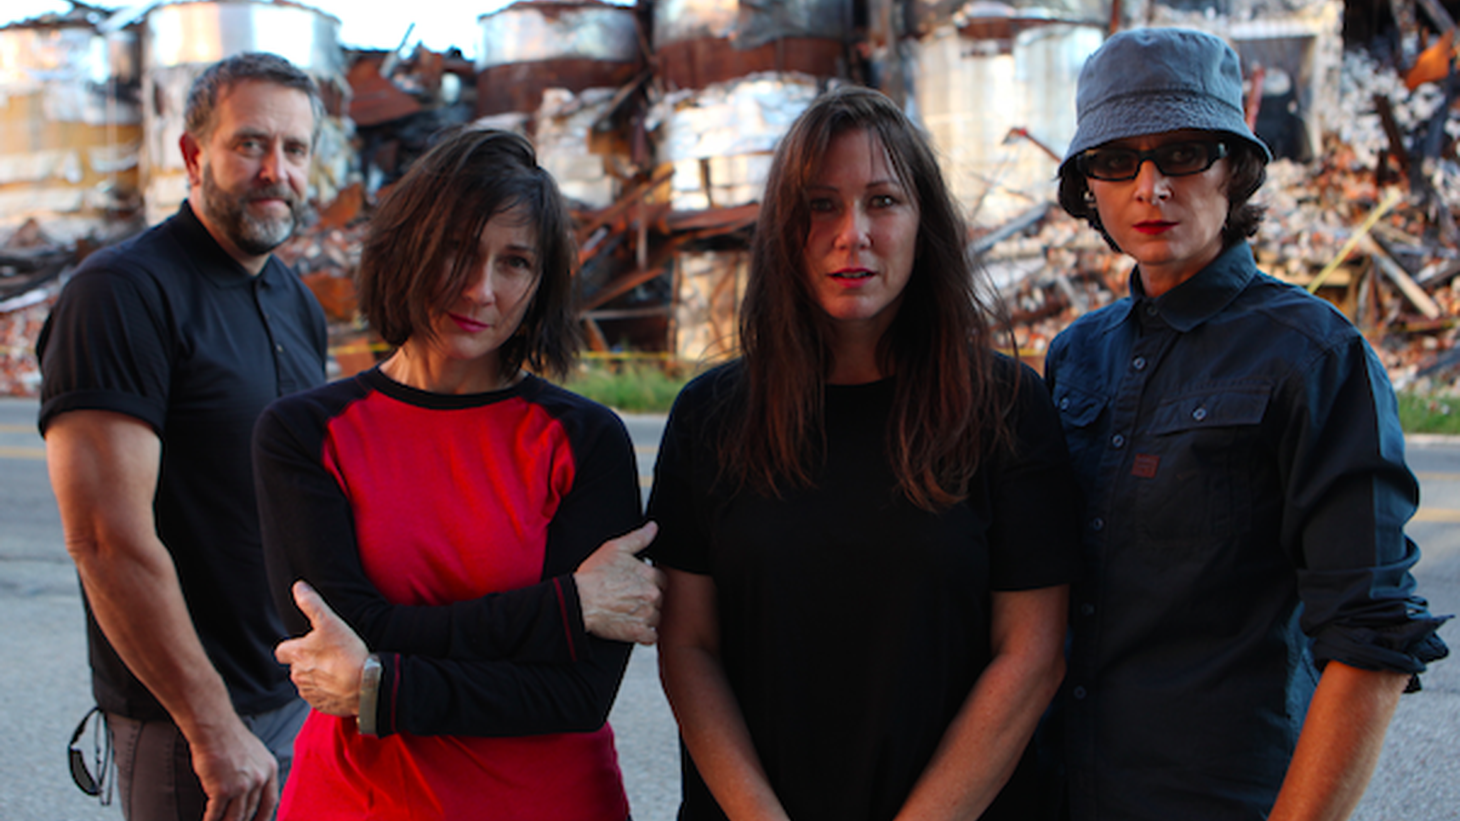 We are excited to welcome The Breeders for a live performance of old and new songs.